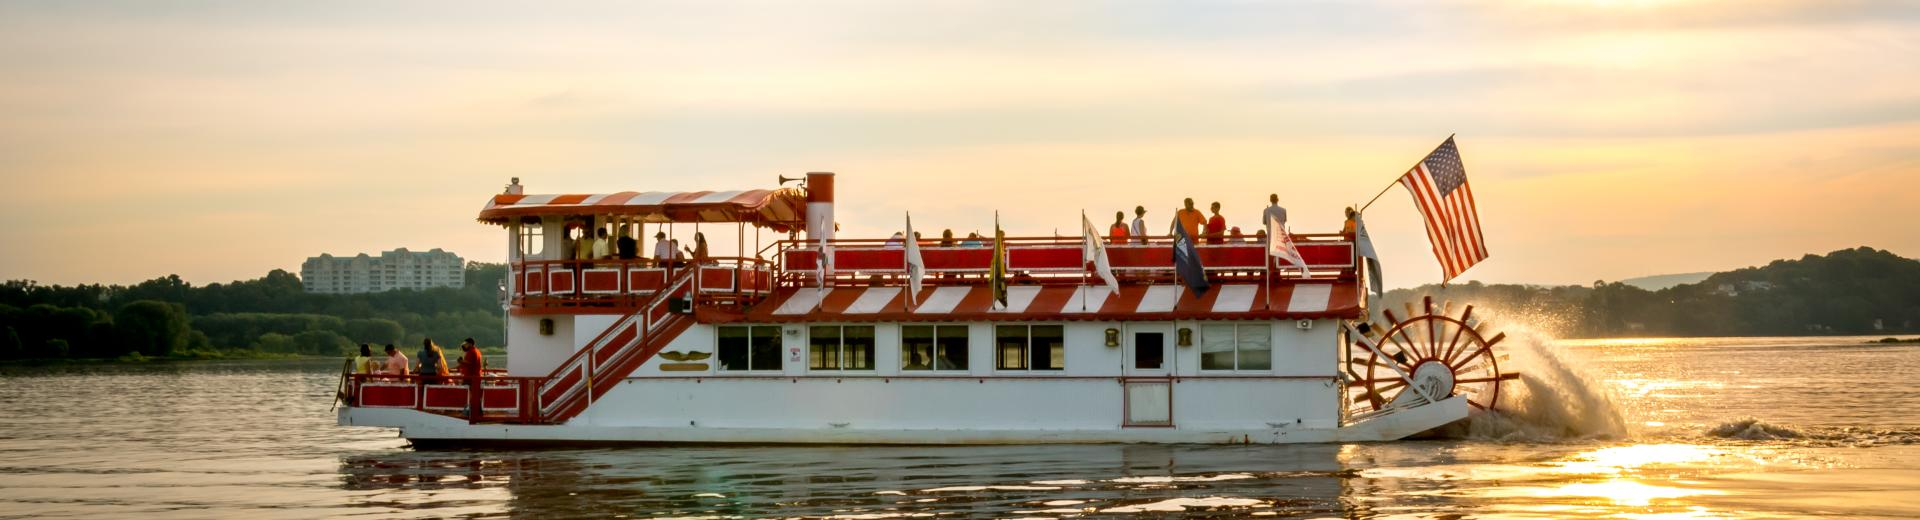 pride-of-the-susquehanna-riverboat-harrisburg-city-island